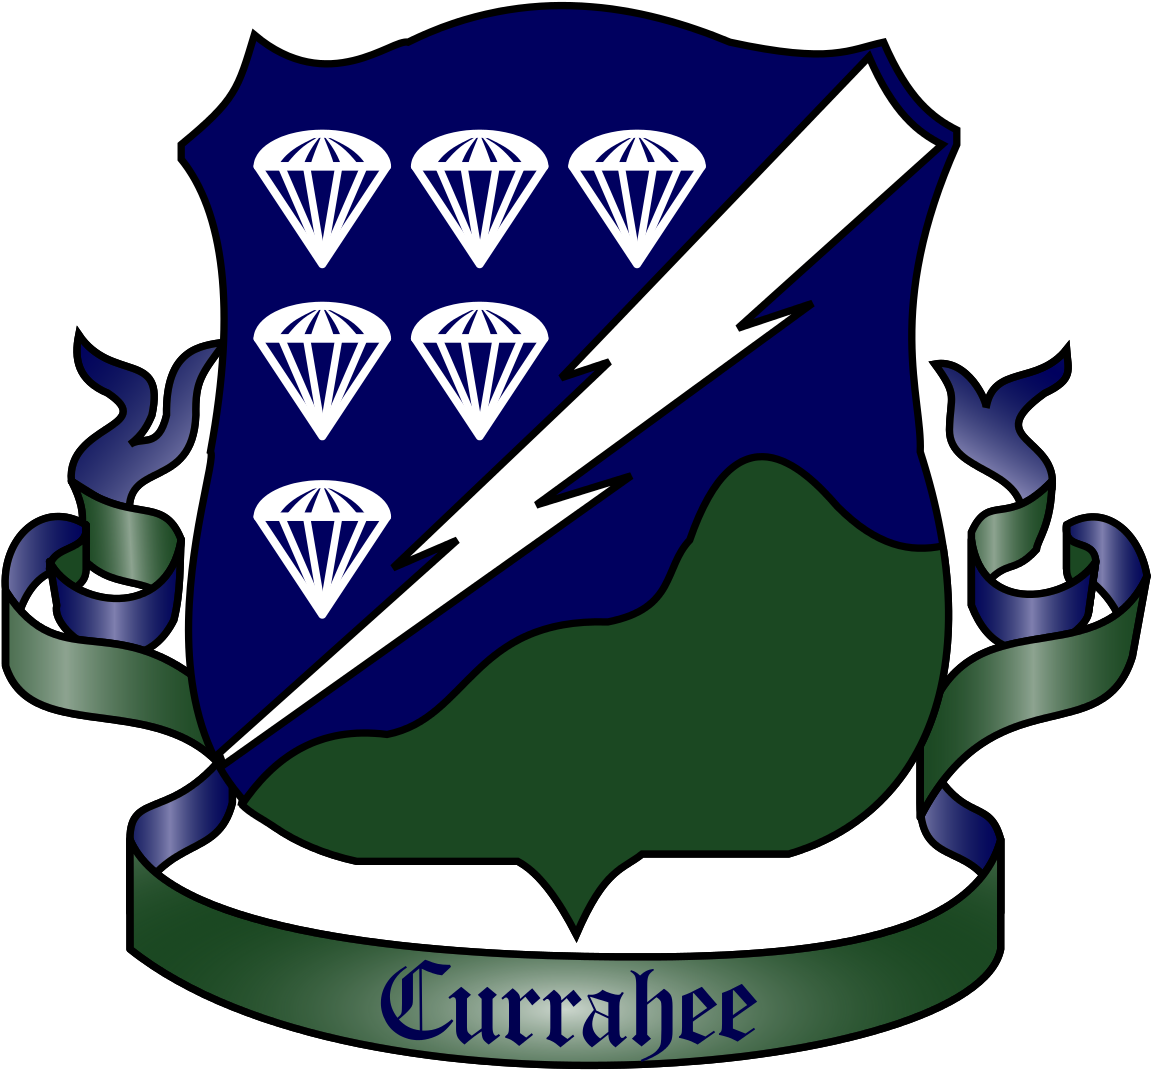 506th Regiment Of The 101st Airborne Division Logo Clipart.